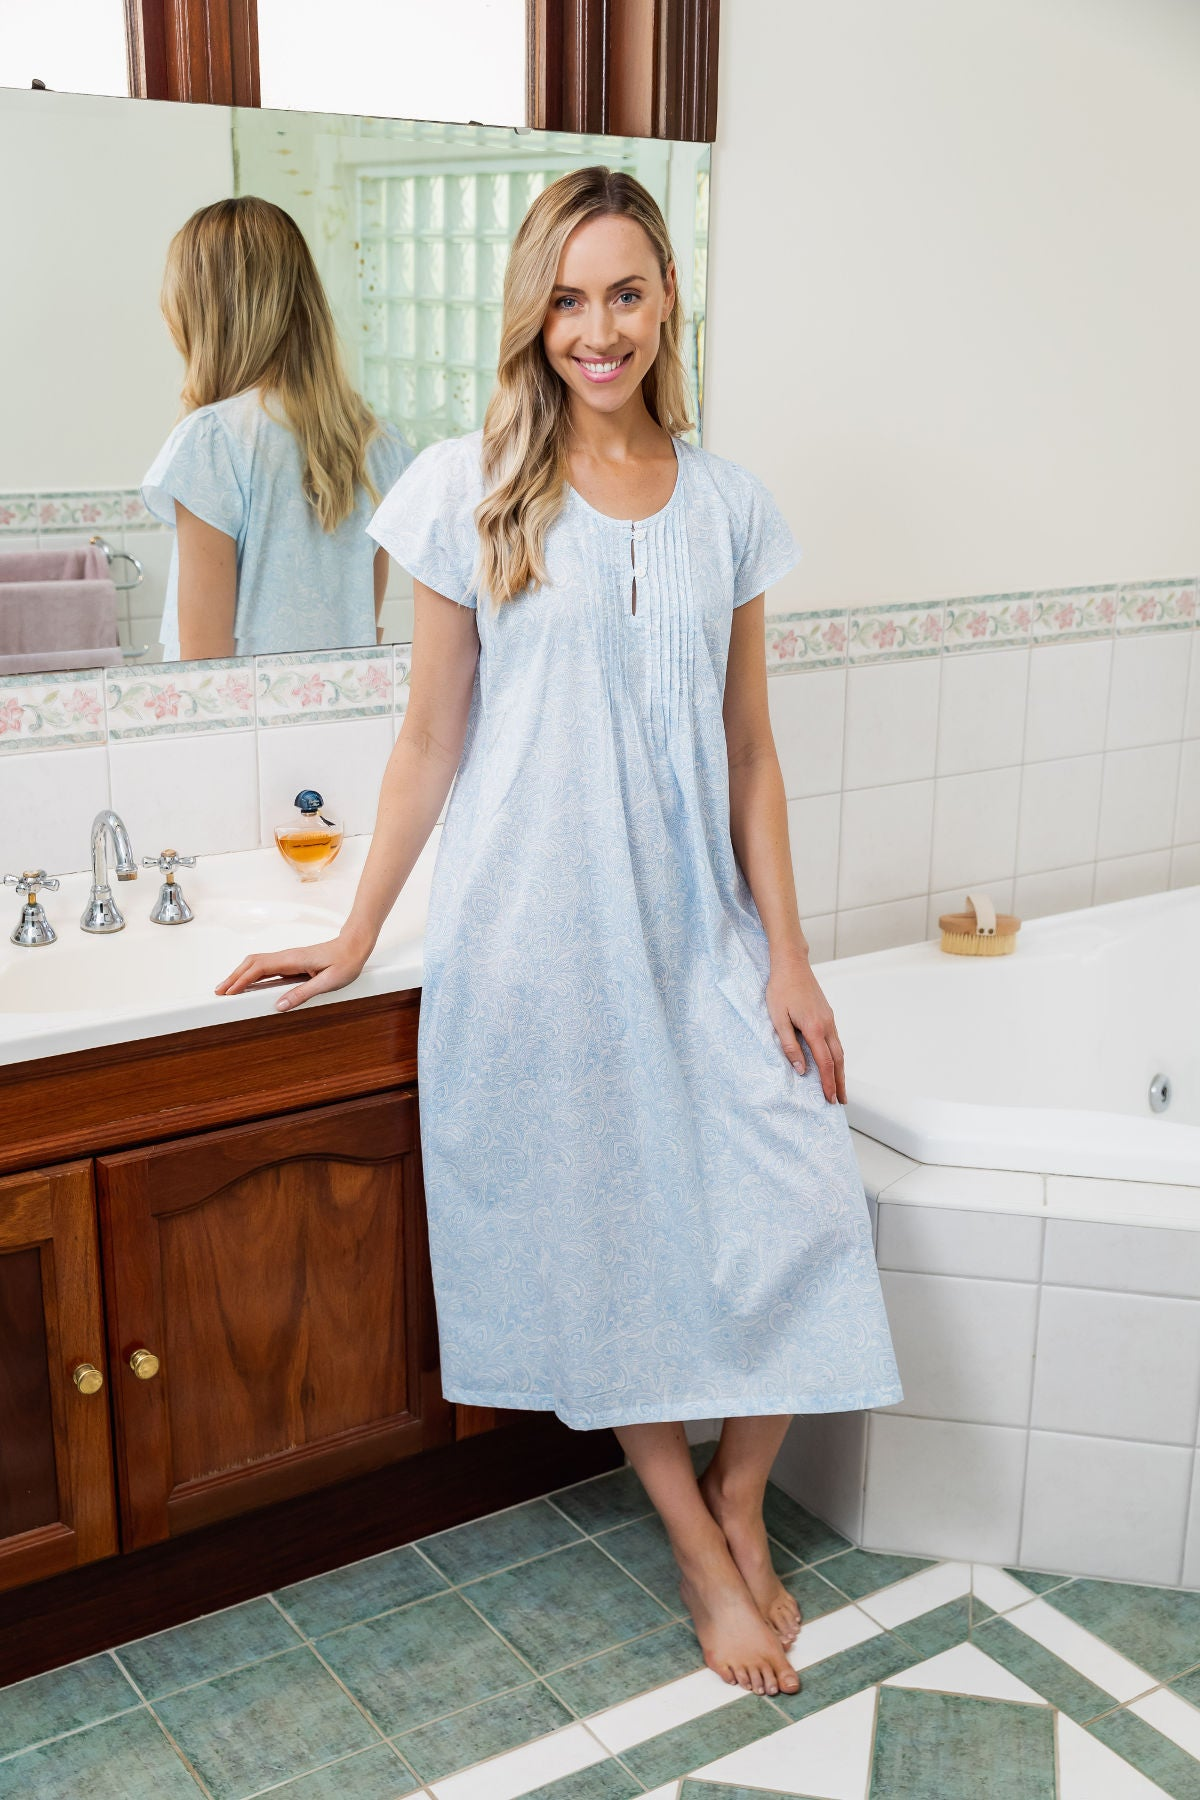 The Joyce cap sleeve nightie has a pleated bodice trim and two front opening buttons, with a soft paisley blue pattern on a white background, falling to a 3/4 length relaxed fit ensuring you drift off to a sleep in comfort.